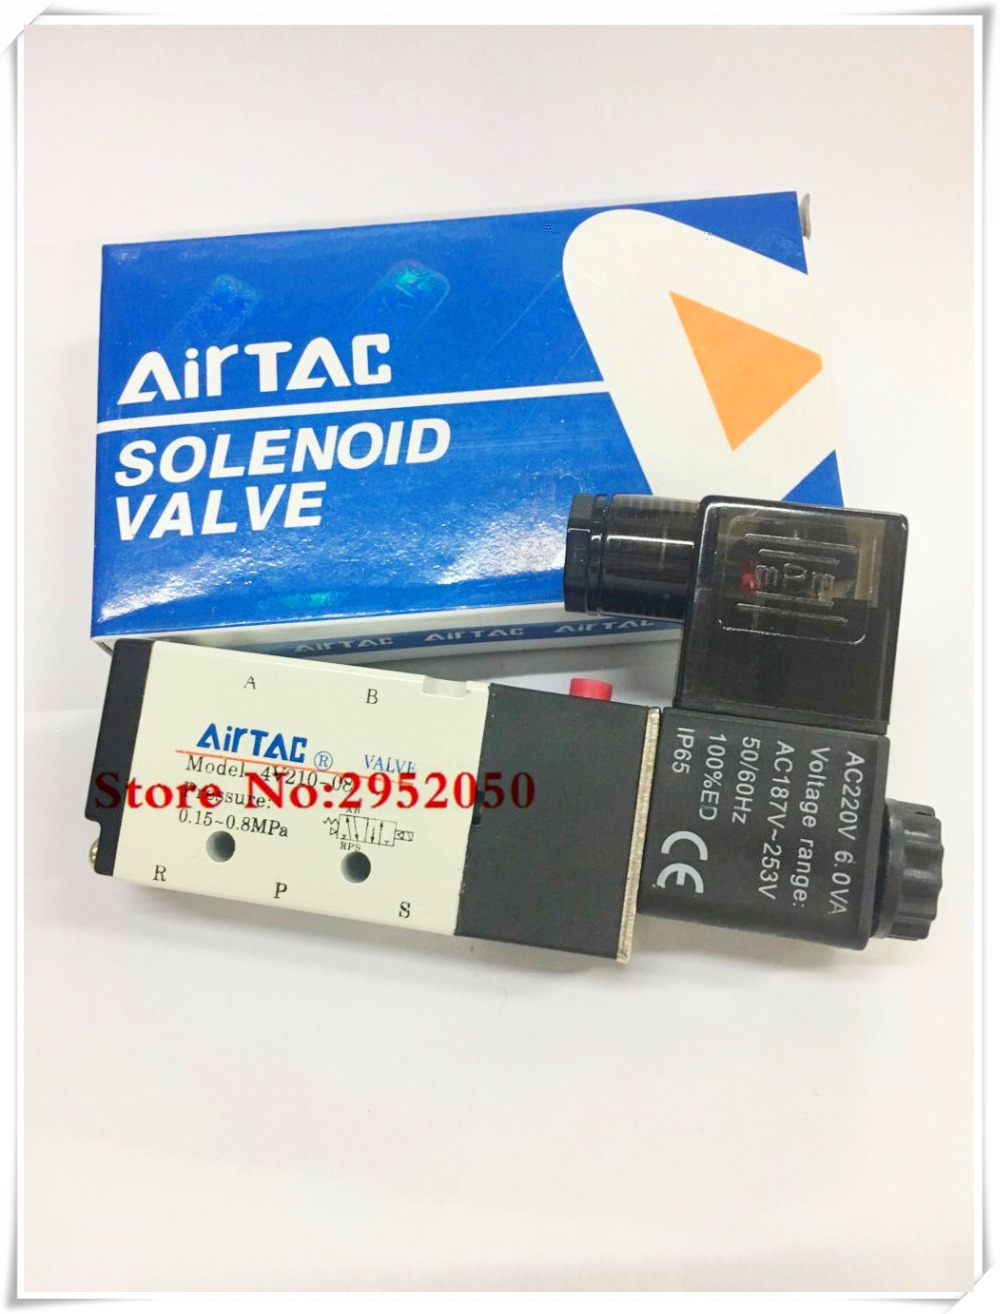 Free shipping 5 Way 2 Position Airtac Electric Solenoid Valve 4V210-08 DC 24V DC12V AC110V AC220V 1/4 Port Size free shipping 5 way 2 position 1 4 airtac solenoid valve 4v210 08 dc24v dc12v ac110v ac220v ac380v